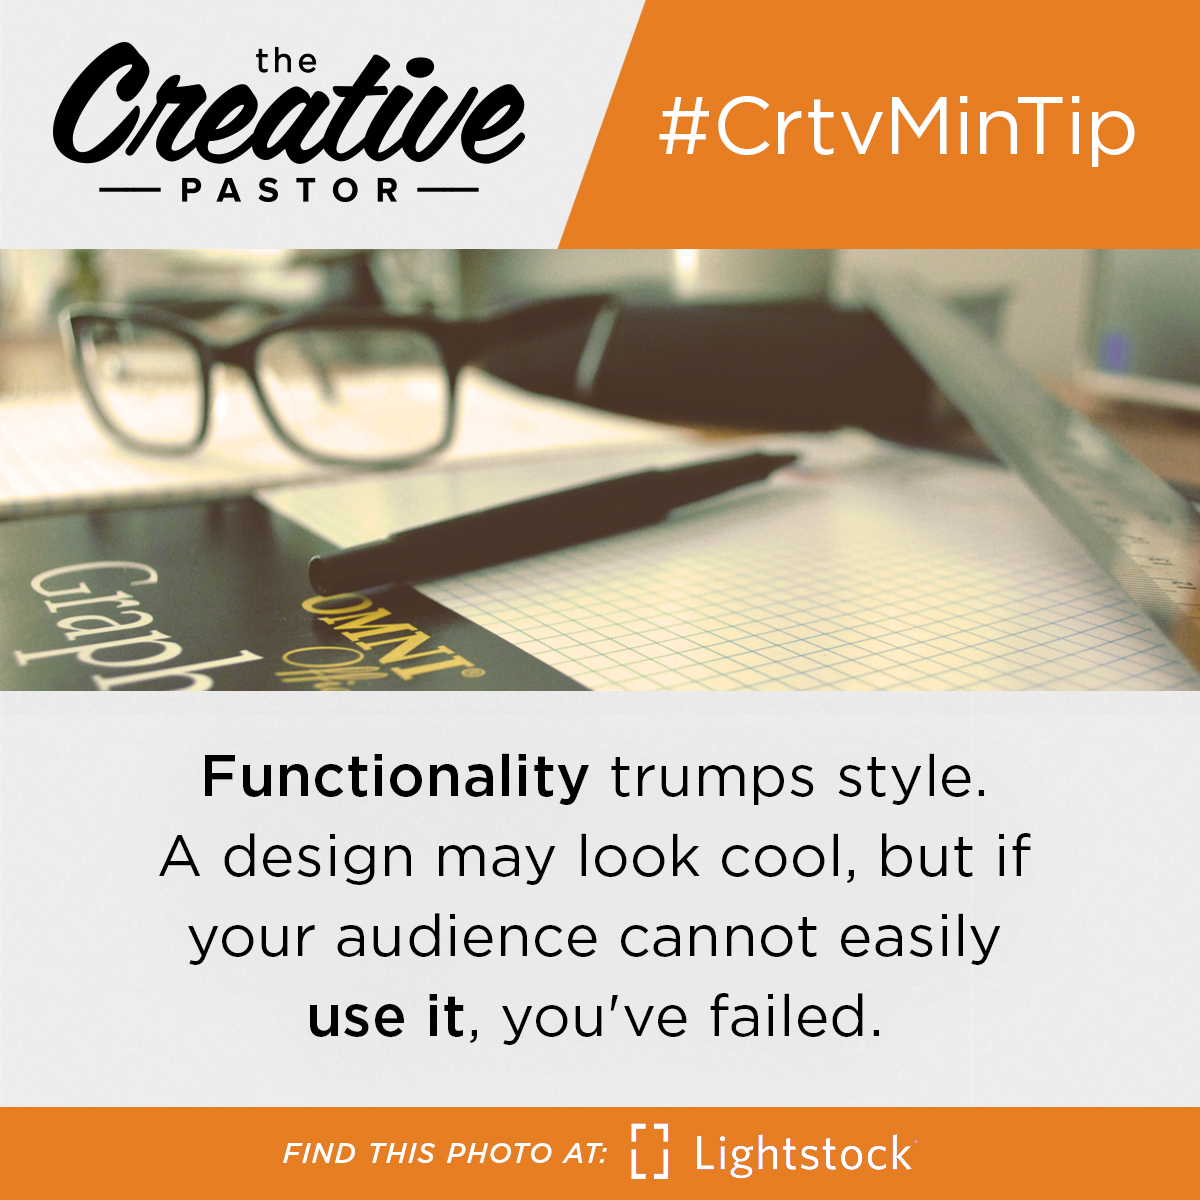 Functionality trumps style. A design may look cool, but if your audience cannot easily use it, you've failed.